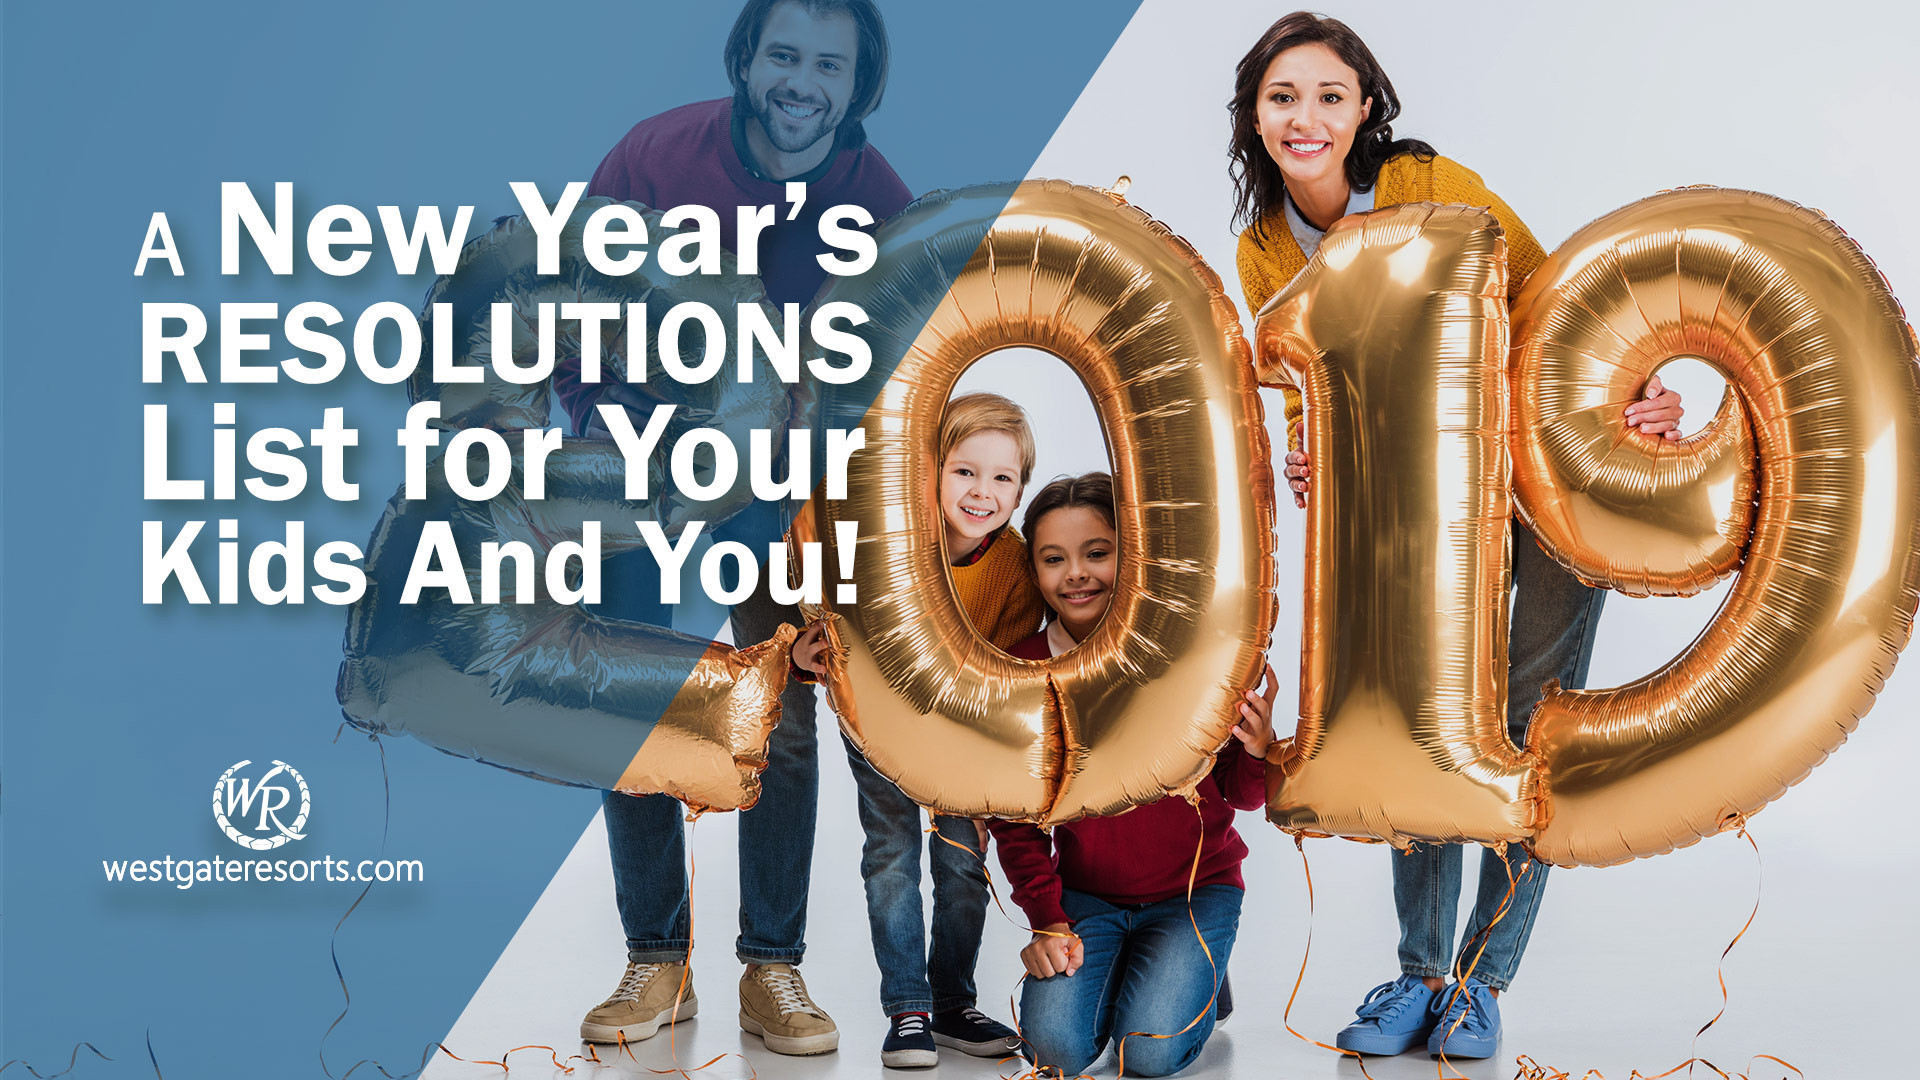 A New Year's Resolution List for Your Kids And You! | New Years Resolution Ideas For The Family